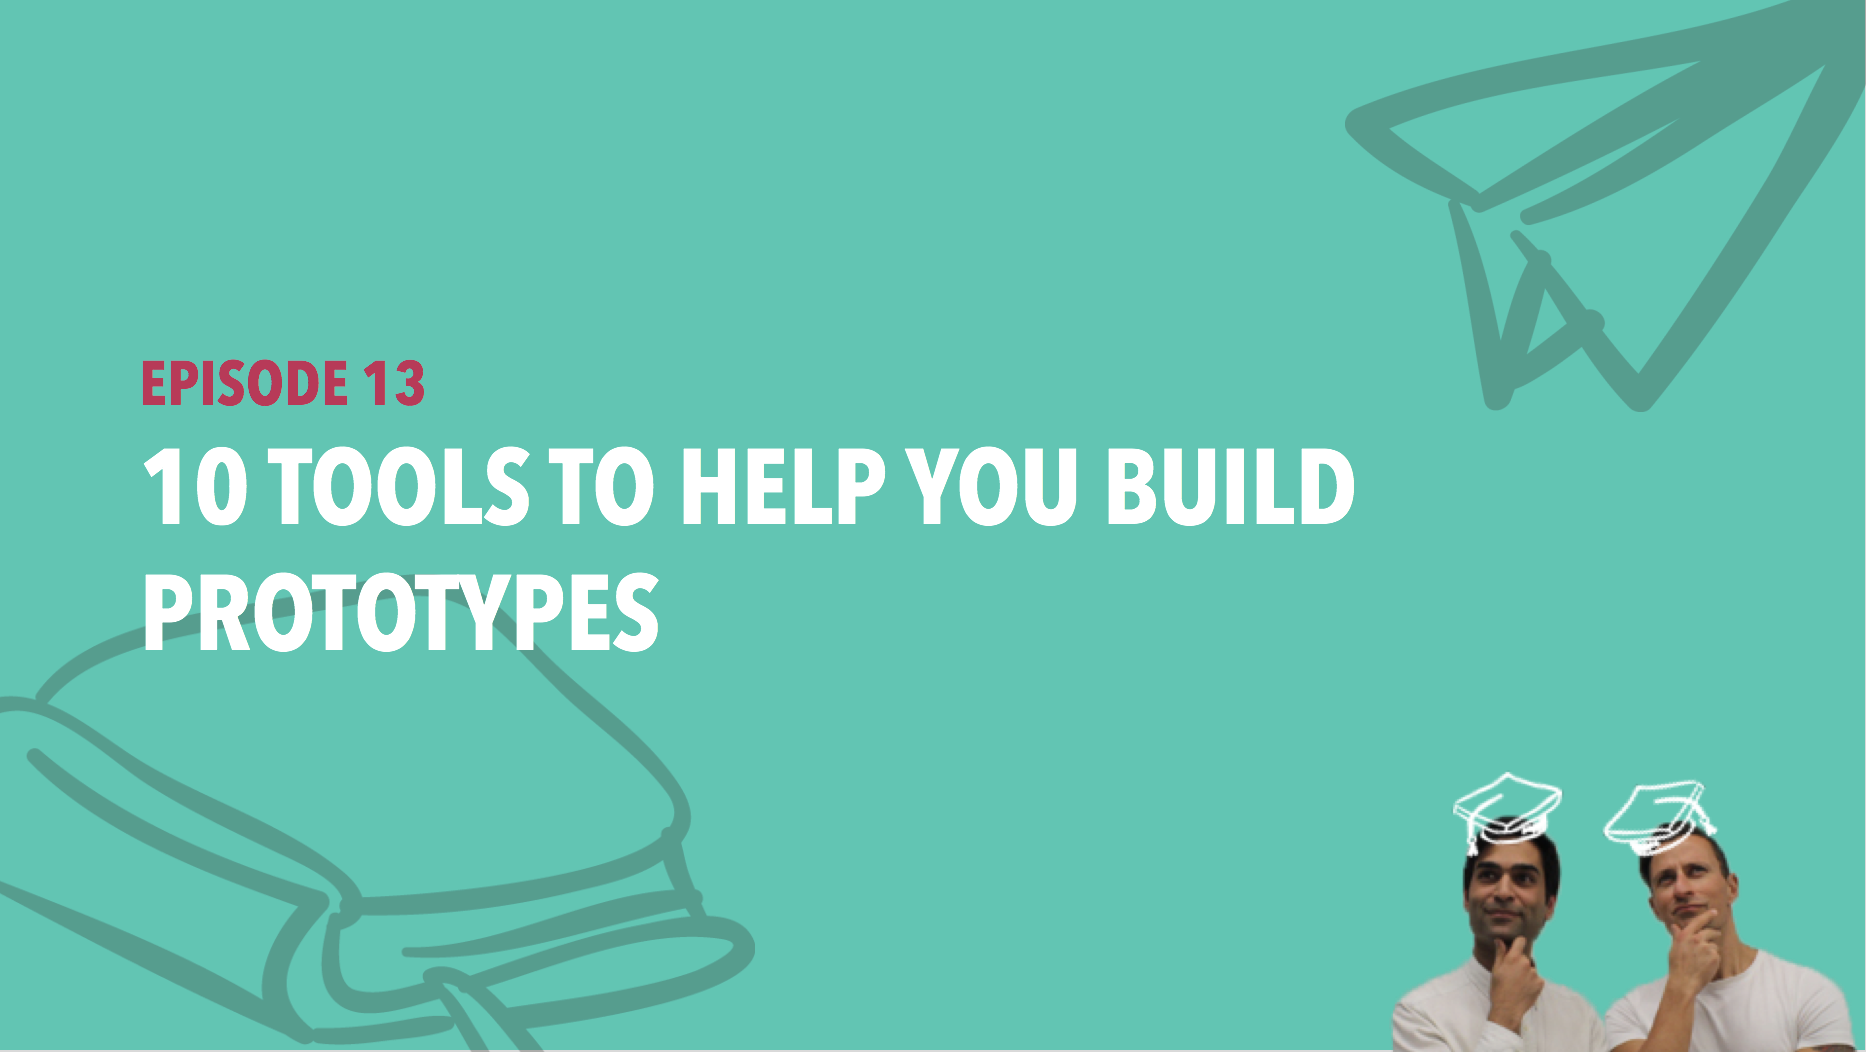 CiSchool Episode #013: 10 Tools to Help you Build Prototypes